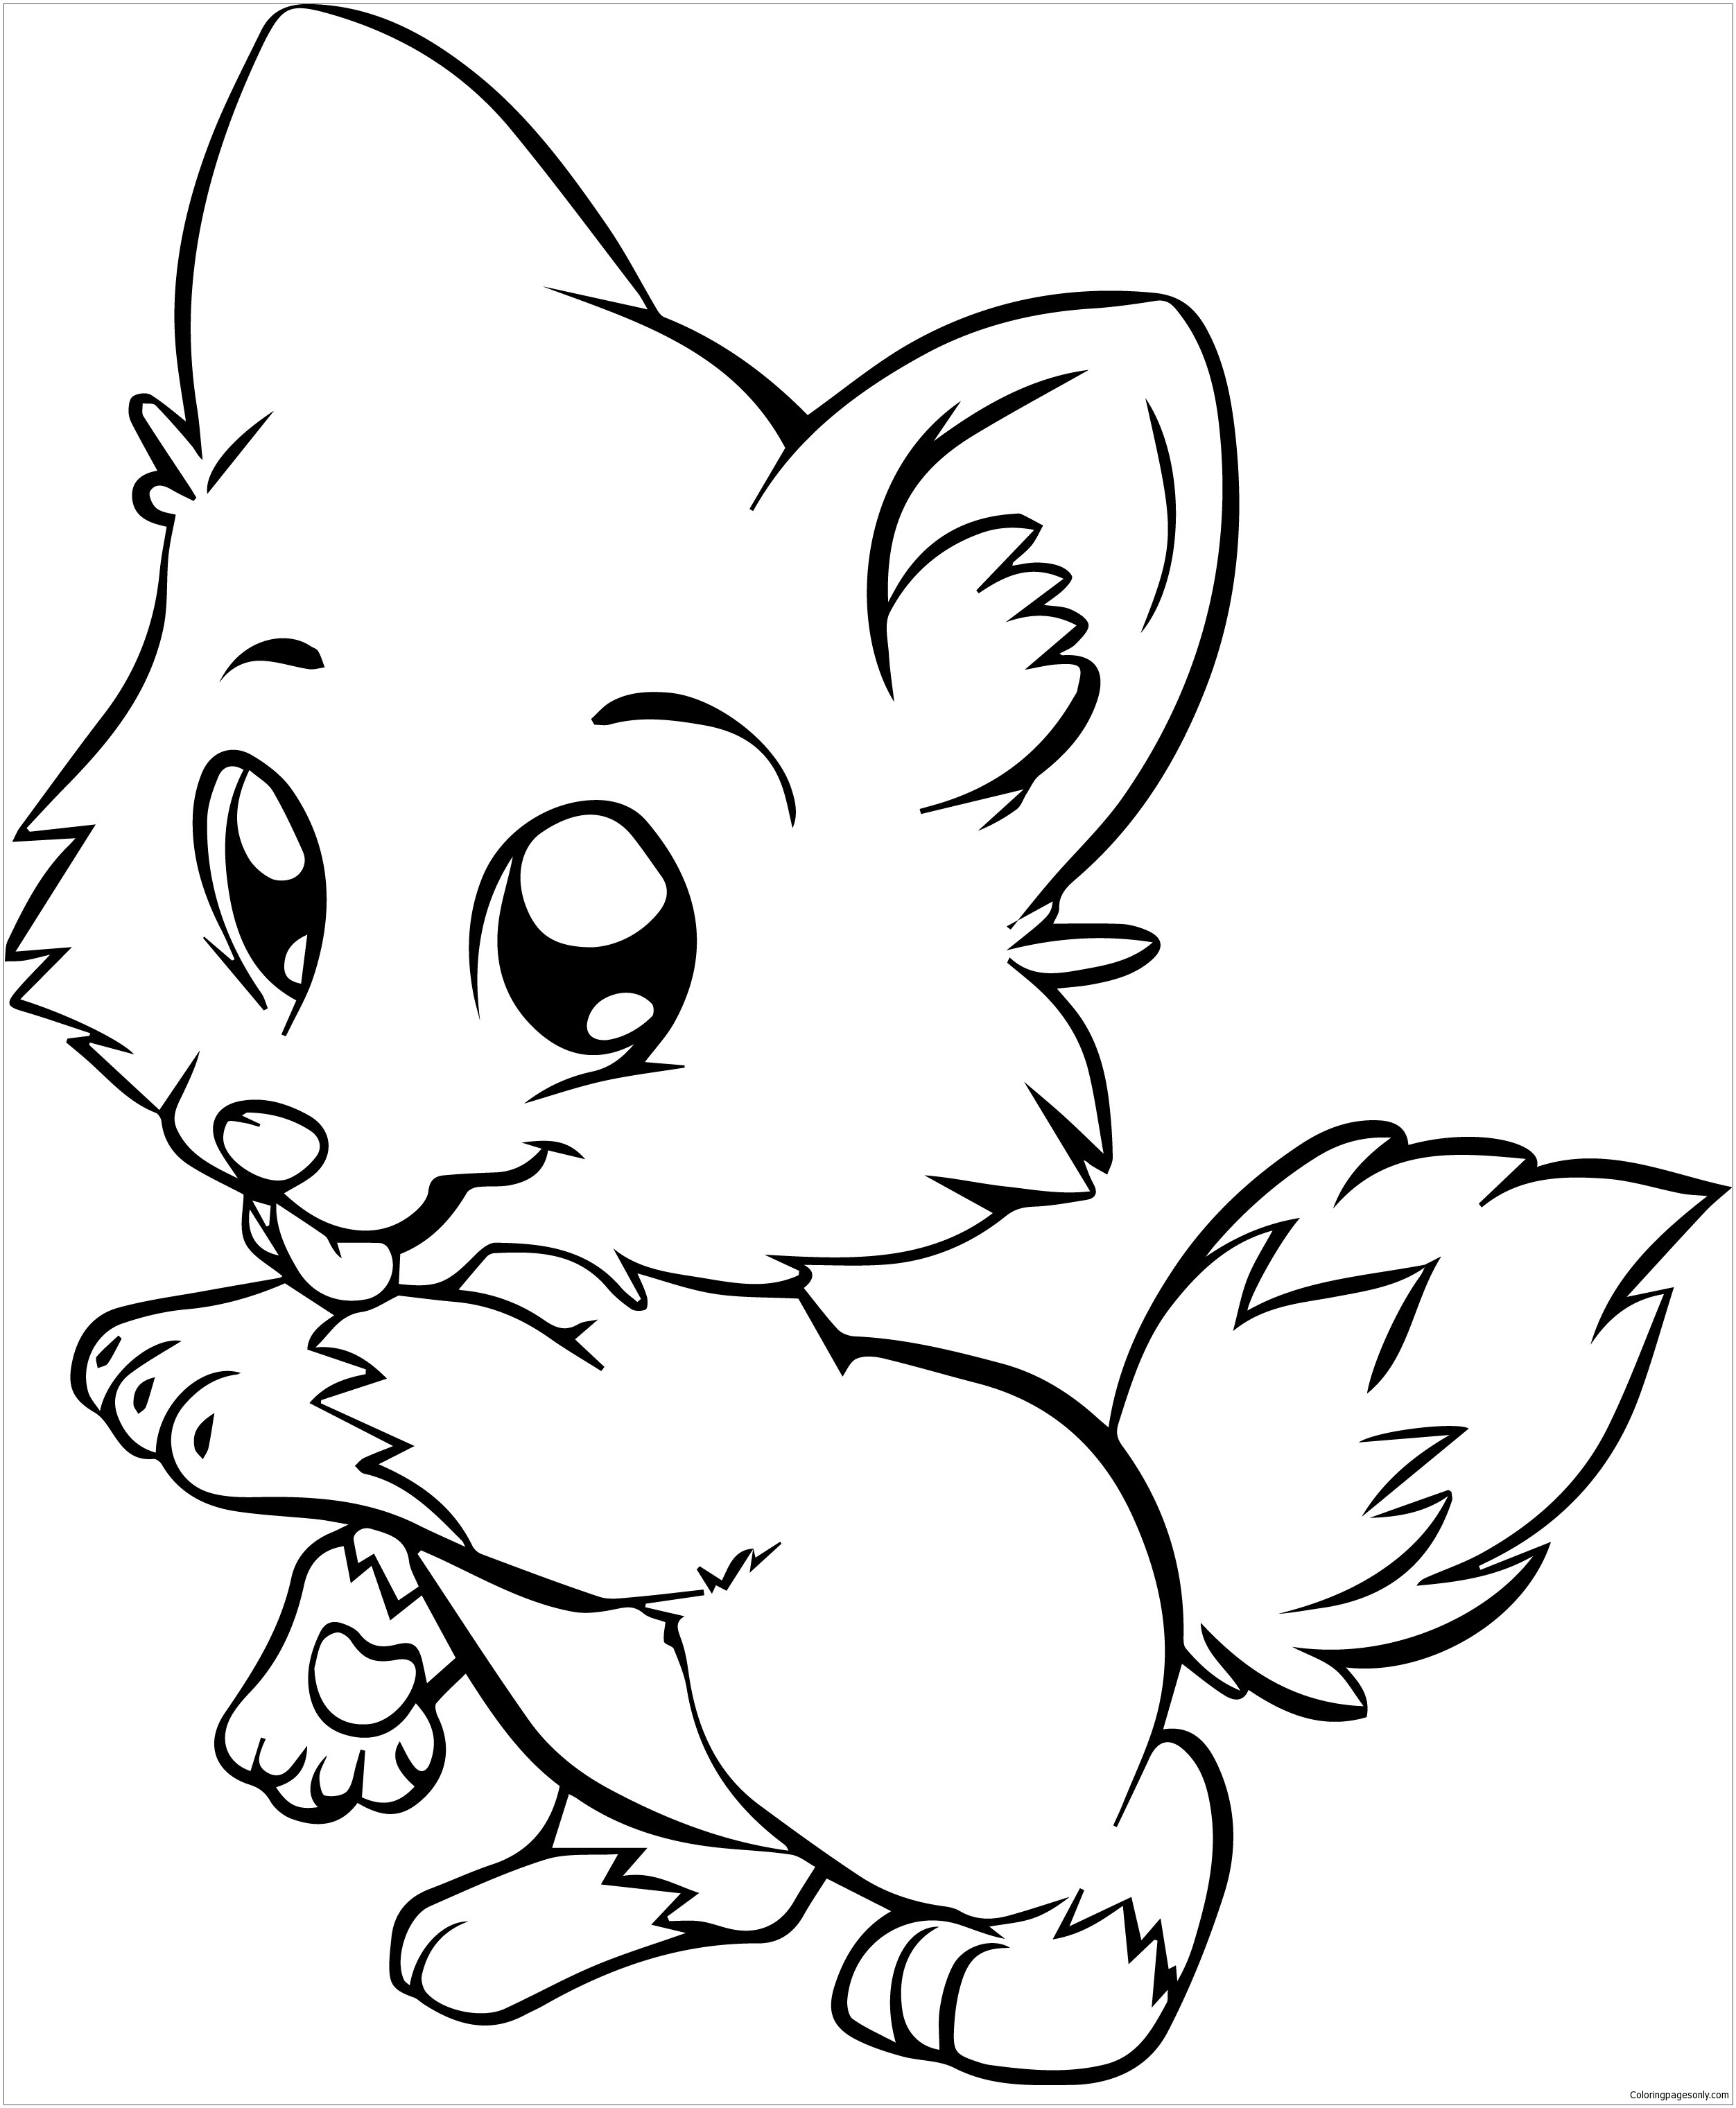 dog coloring picture cute dog animal coloring pages books for print coloring dog picture